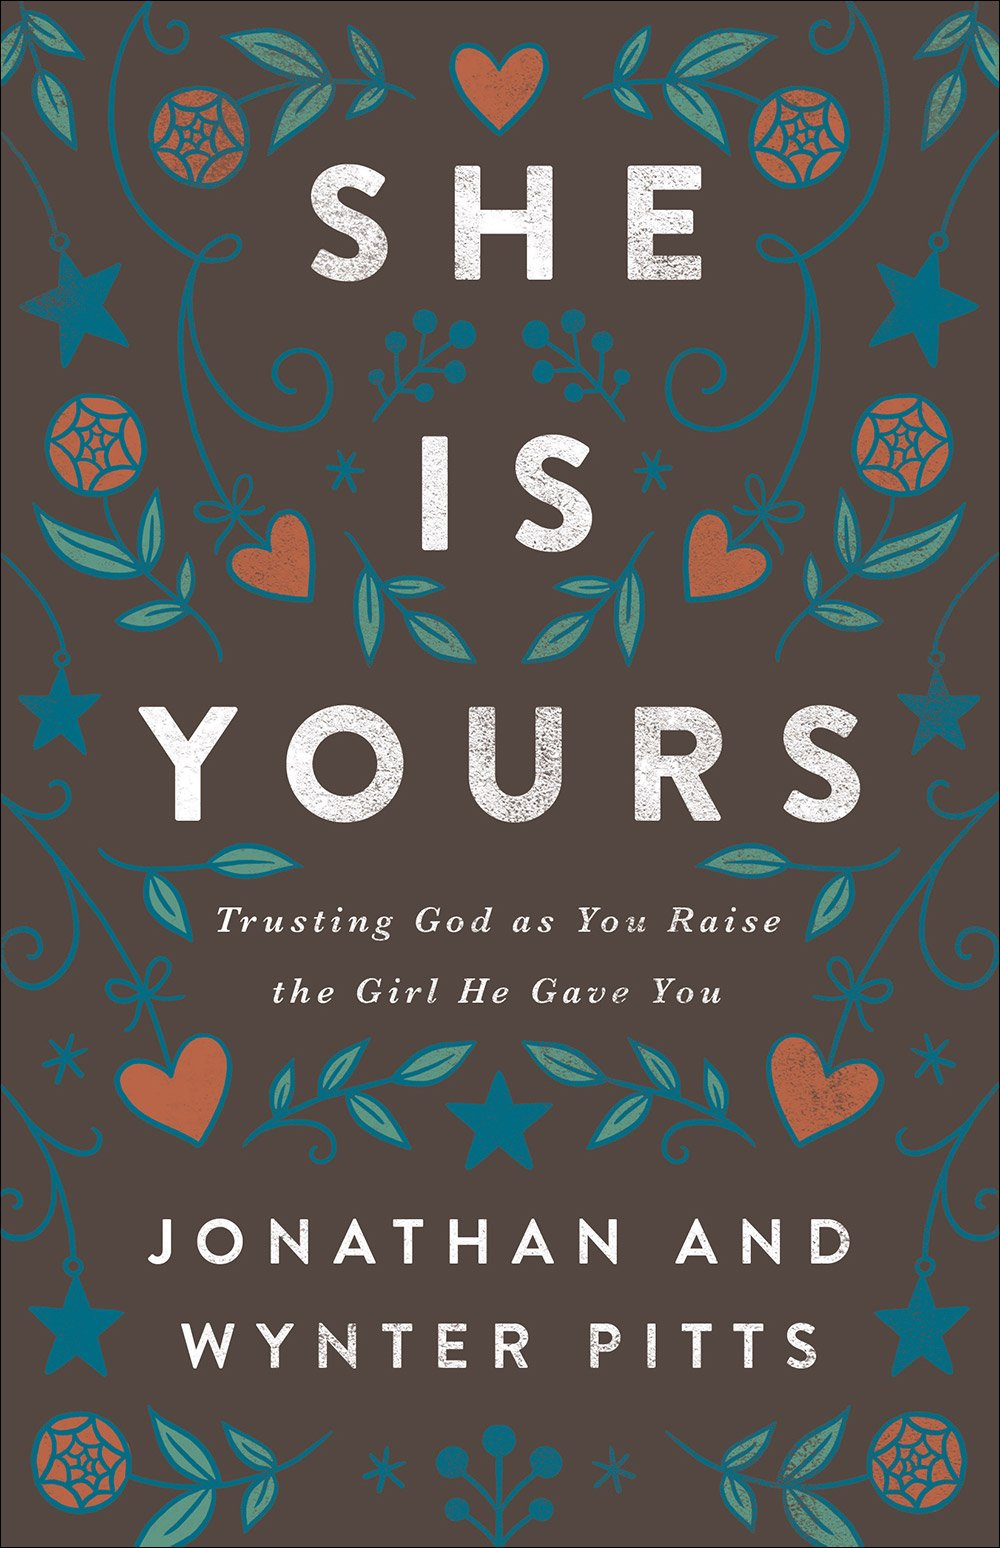 10. - SHE IS YOURSby Jonathan and Winter Pitts